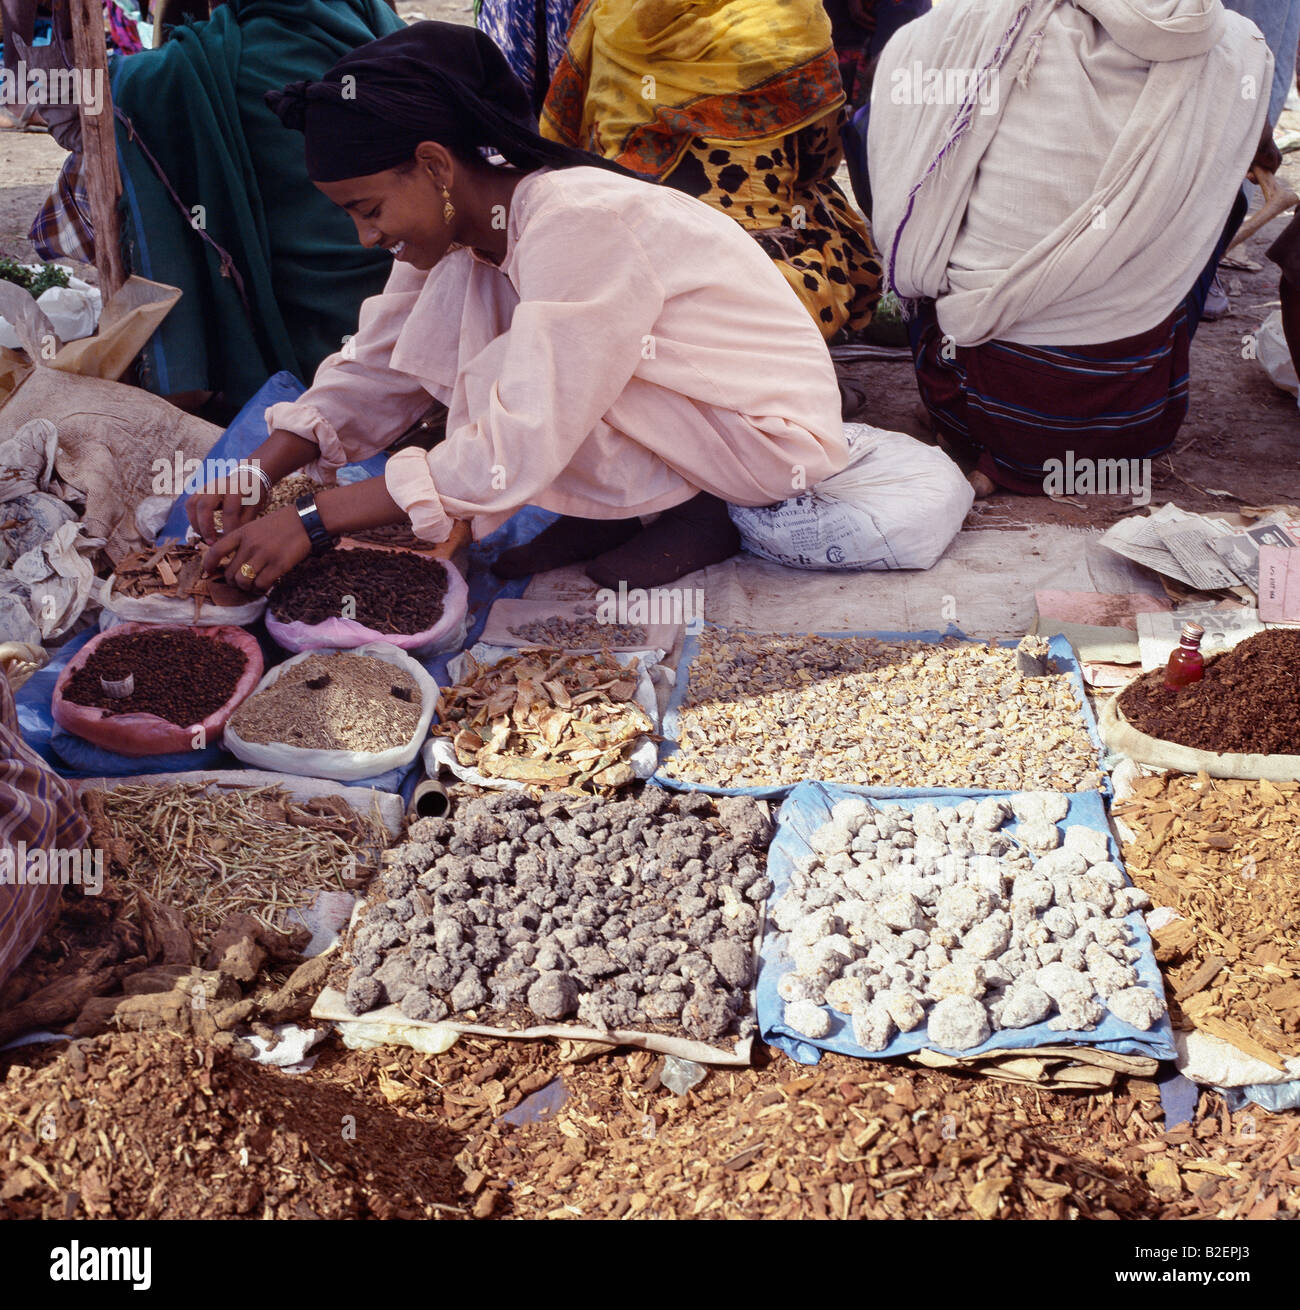 A woman sells various fragrant woods and frankincense at Bati market. Bati is the largest open-air market in Ethiopia. - Stock Image